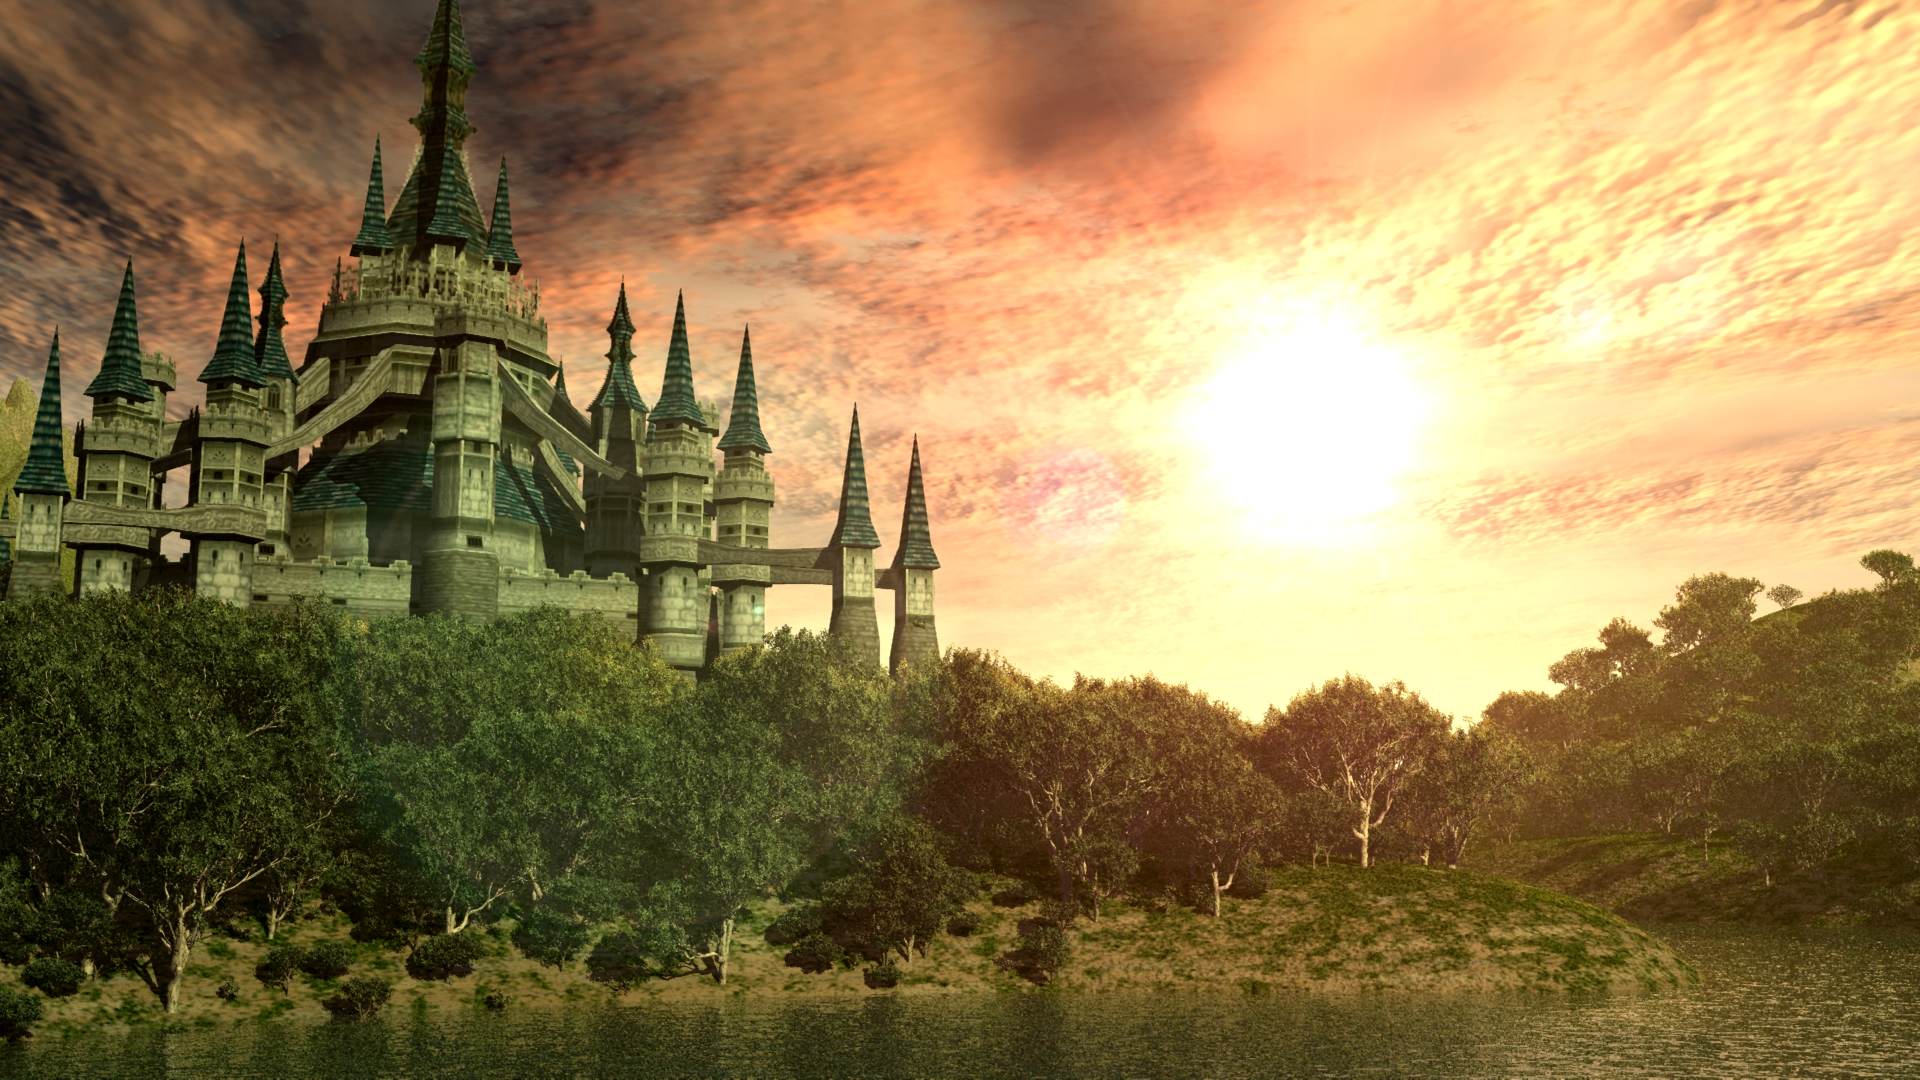 Hyrule Castle Twilight Princess wallpaper   210212 1920x1080